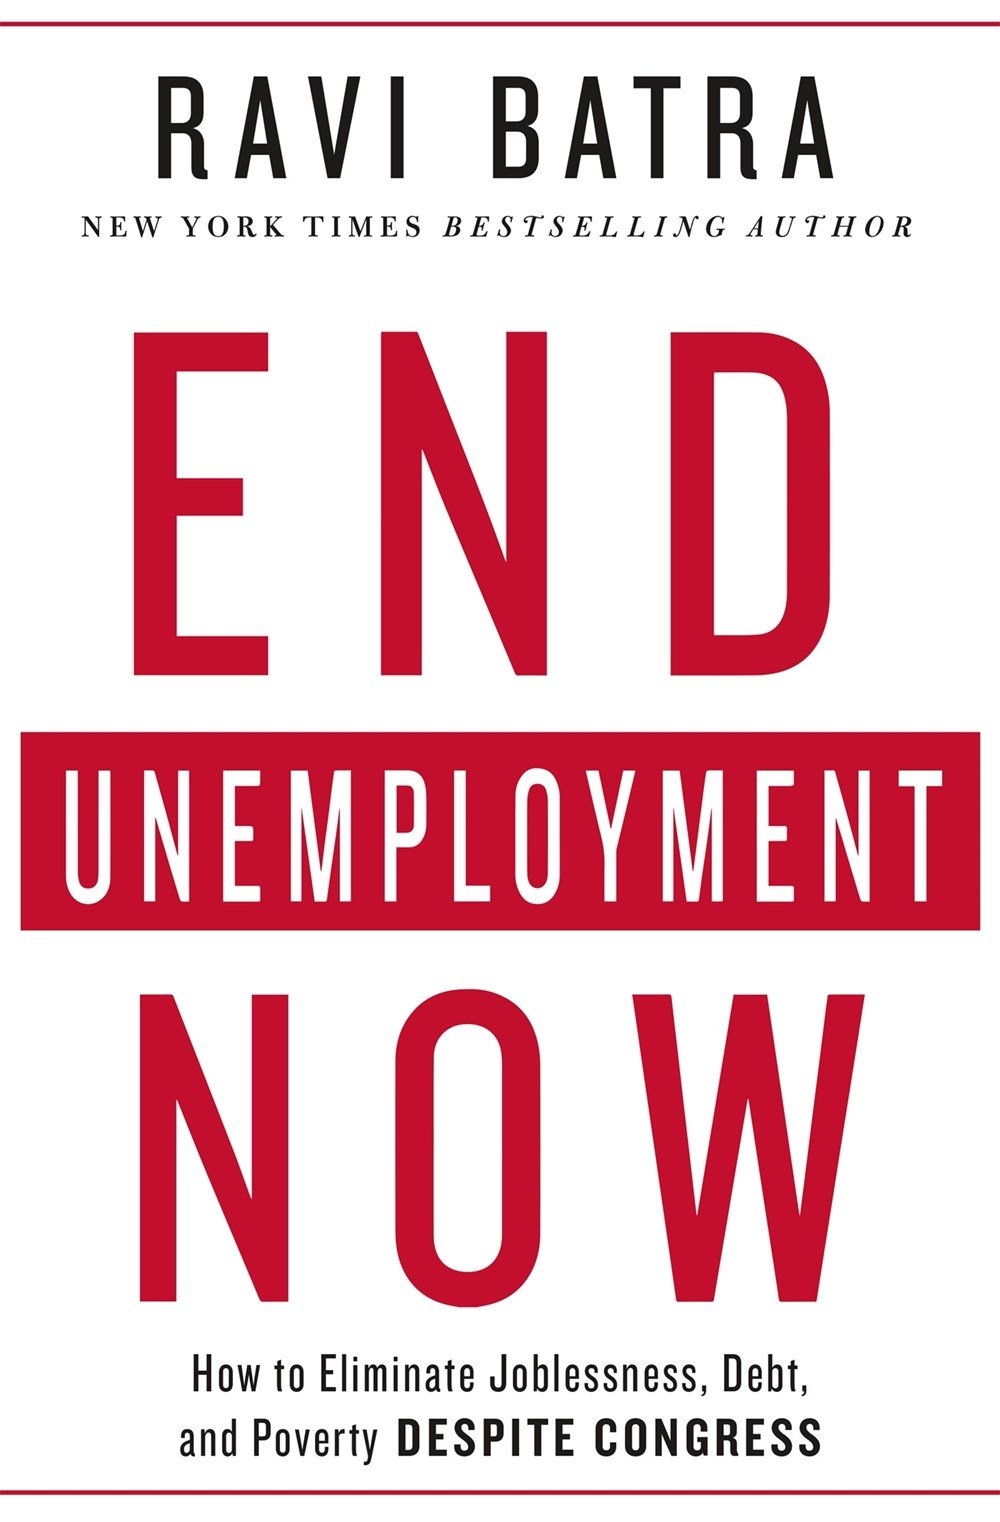 End Unemployment Now: How to Eliminate Joblessness, Debt, and Poverty Despite Congress